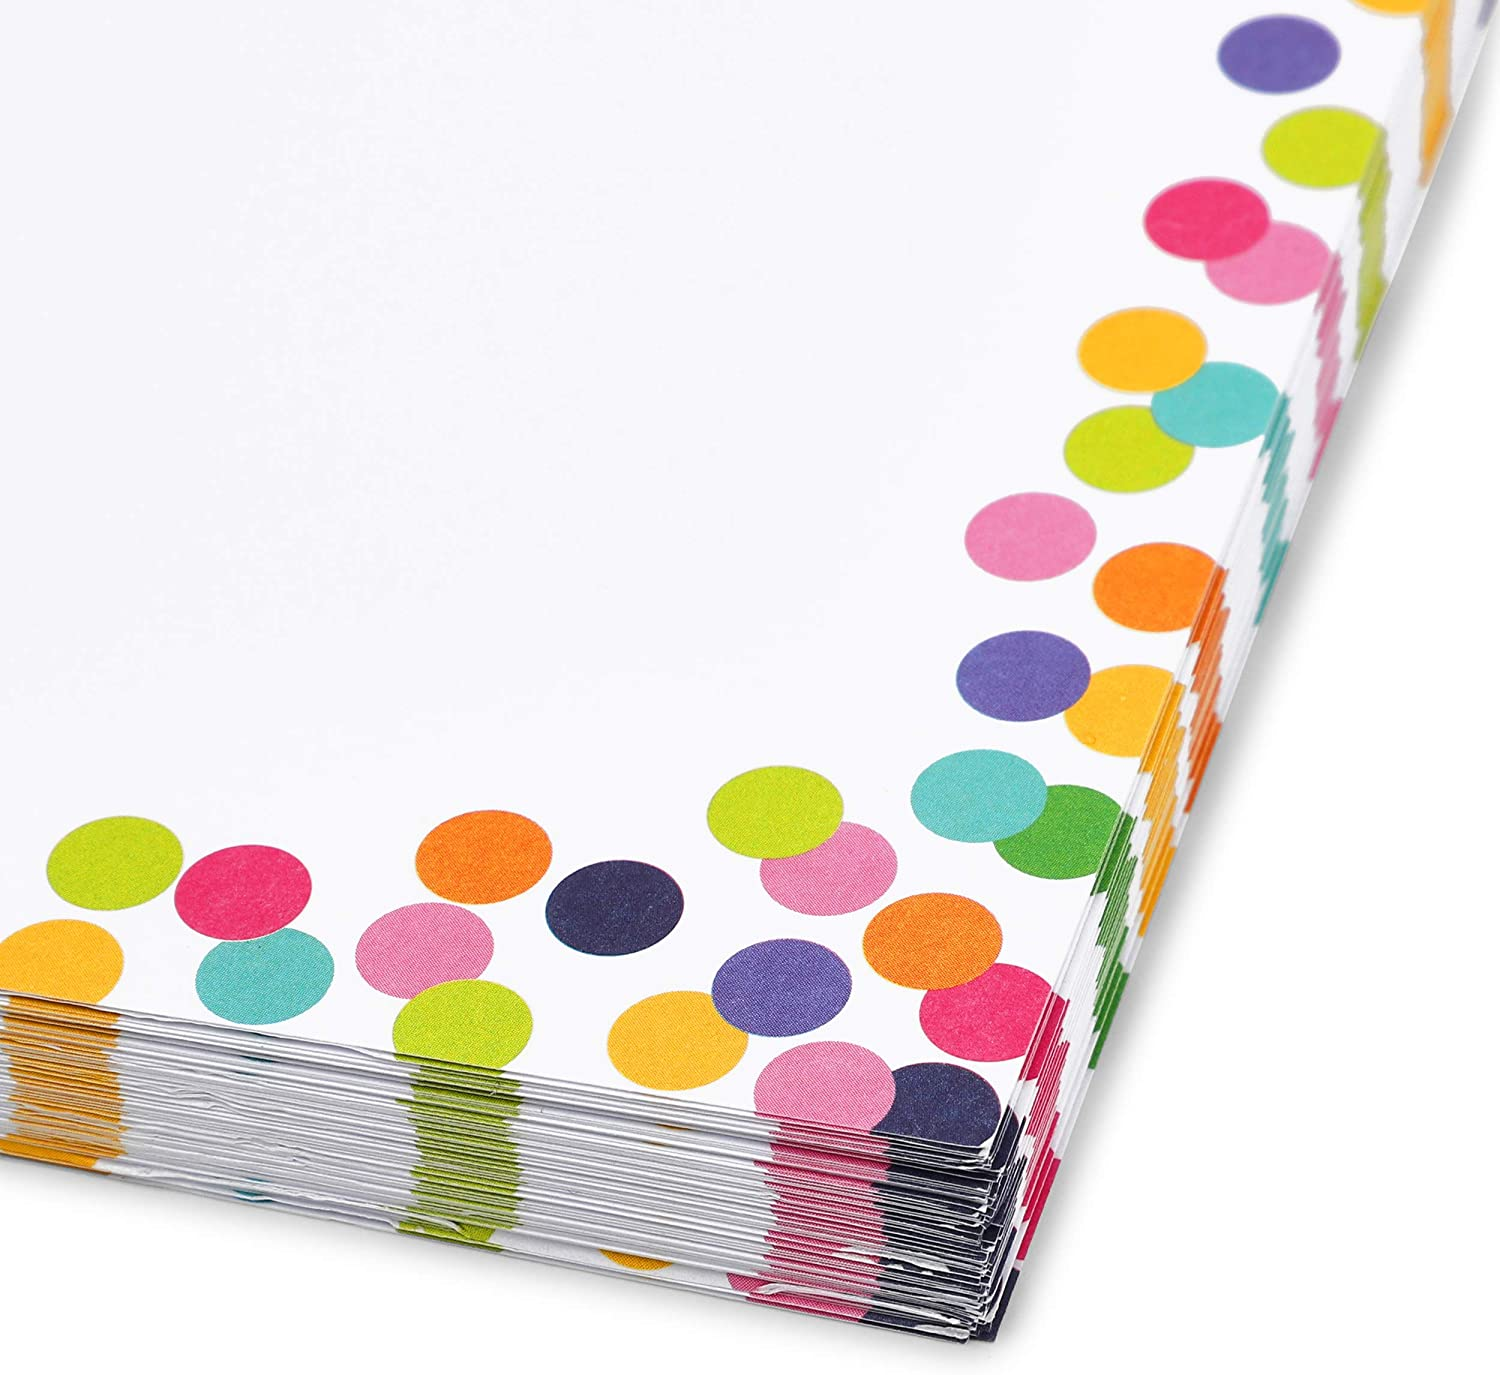 8.5 x 11 Inches, 96 Sheets Confetti Stationery Paper